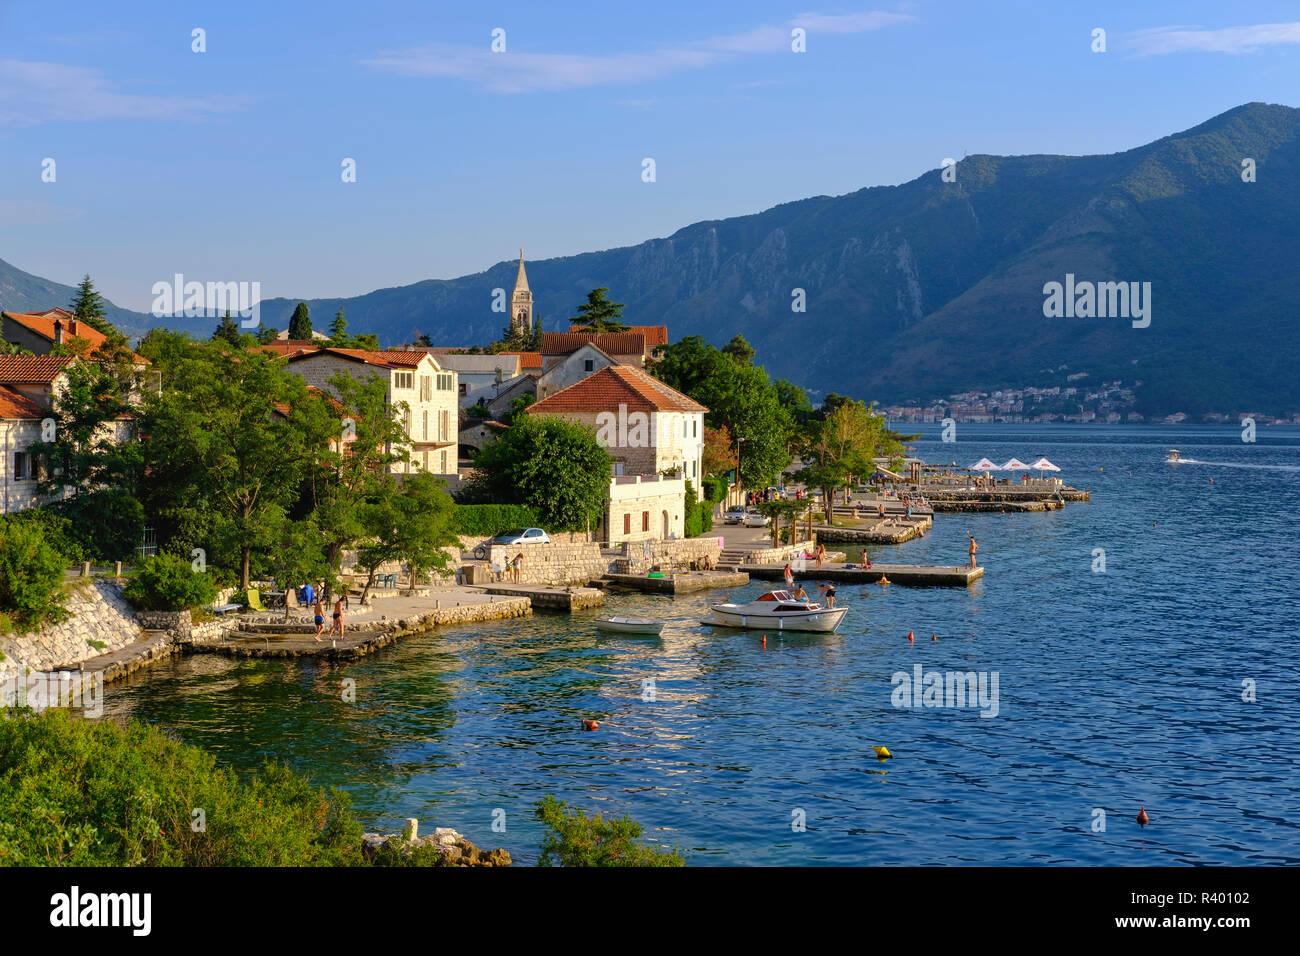 Dobrota, Bay of Kotor, Montenegro Stock Photo